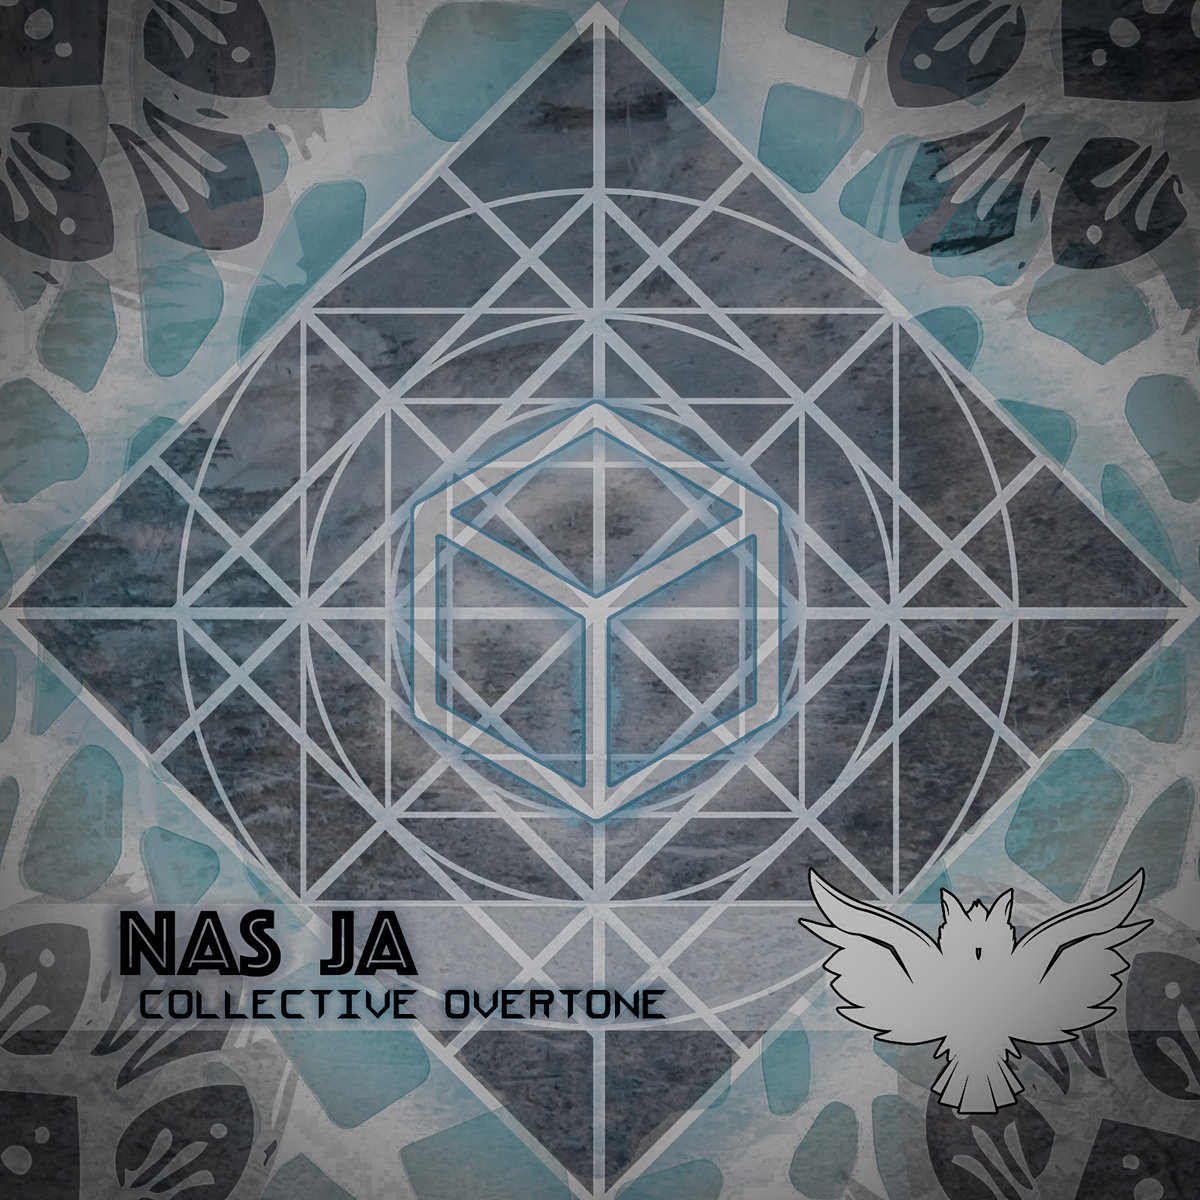 Nas-Ja - Revolving Doors @ 'Collective Overtone' album (bass, electronic)